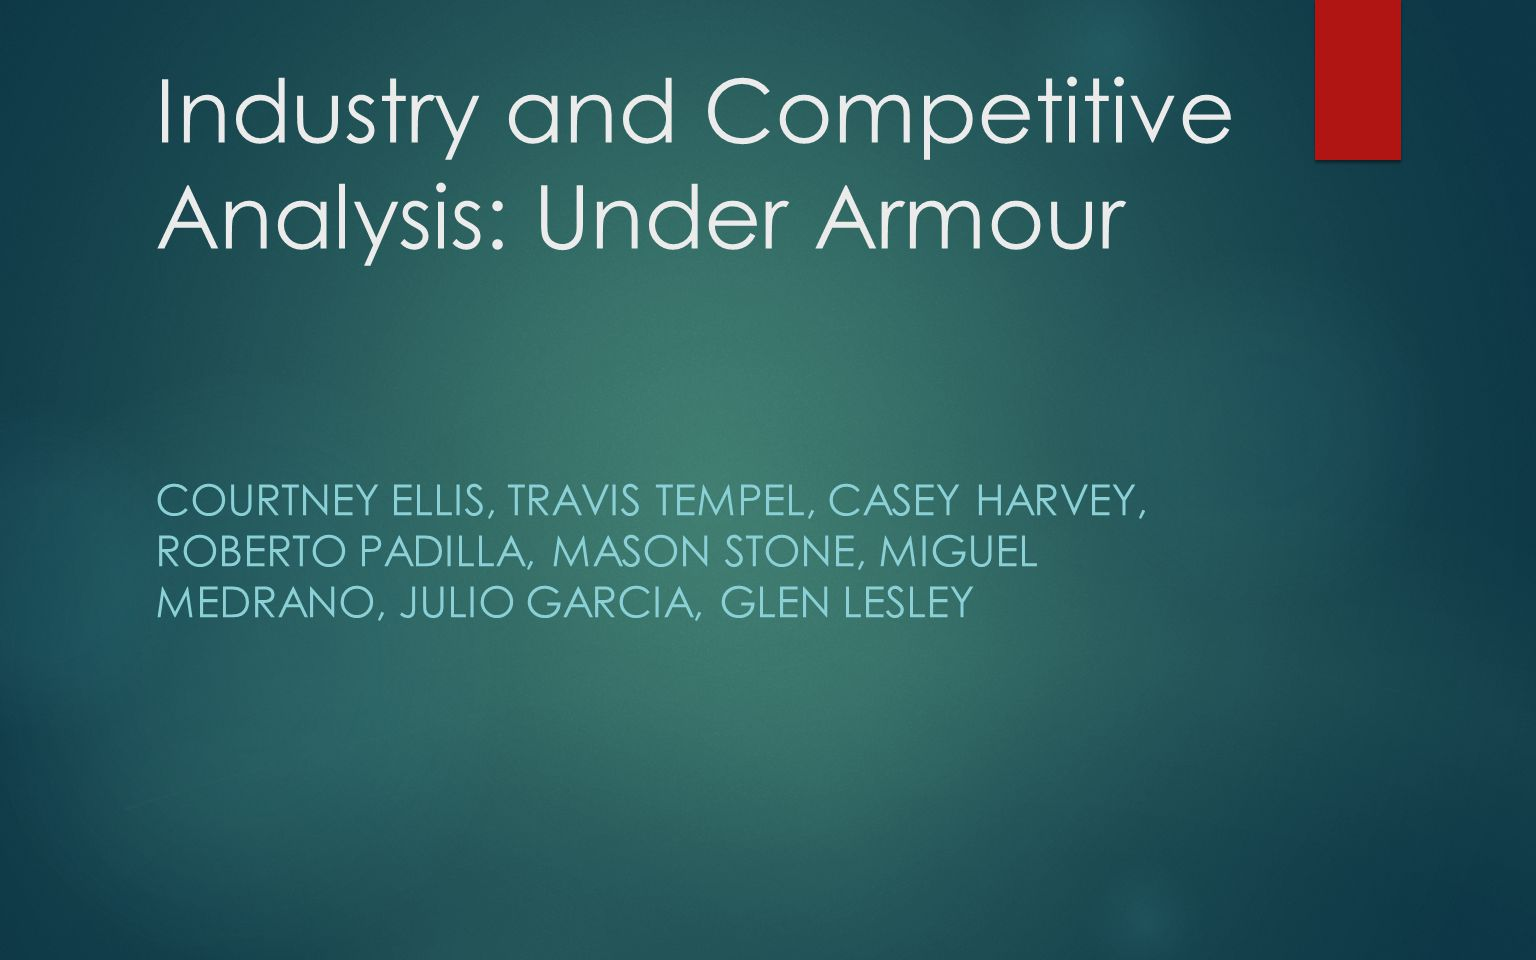 Industry and Competitive Analysis: Under Armour